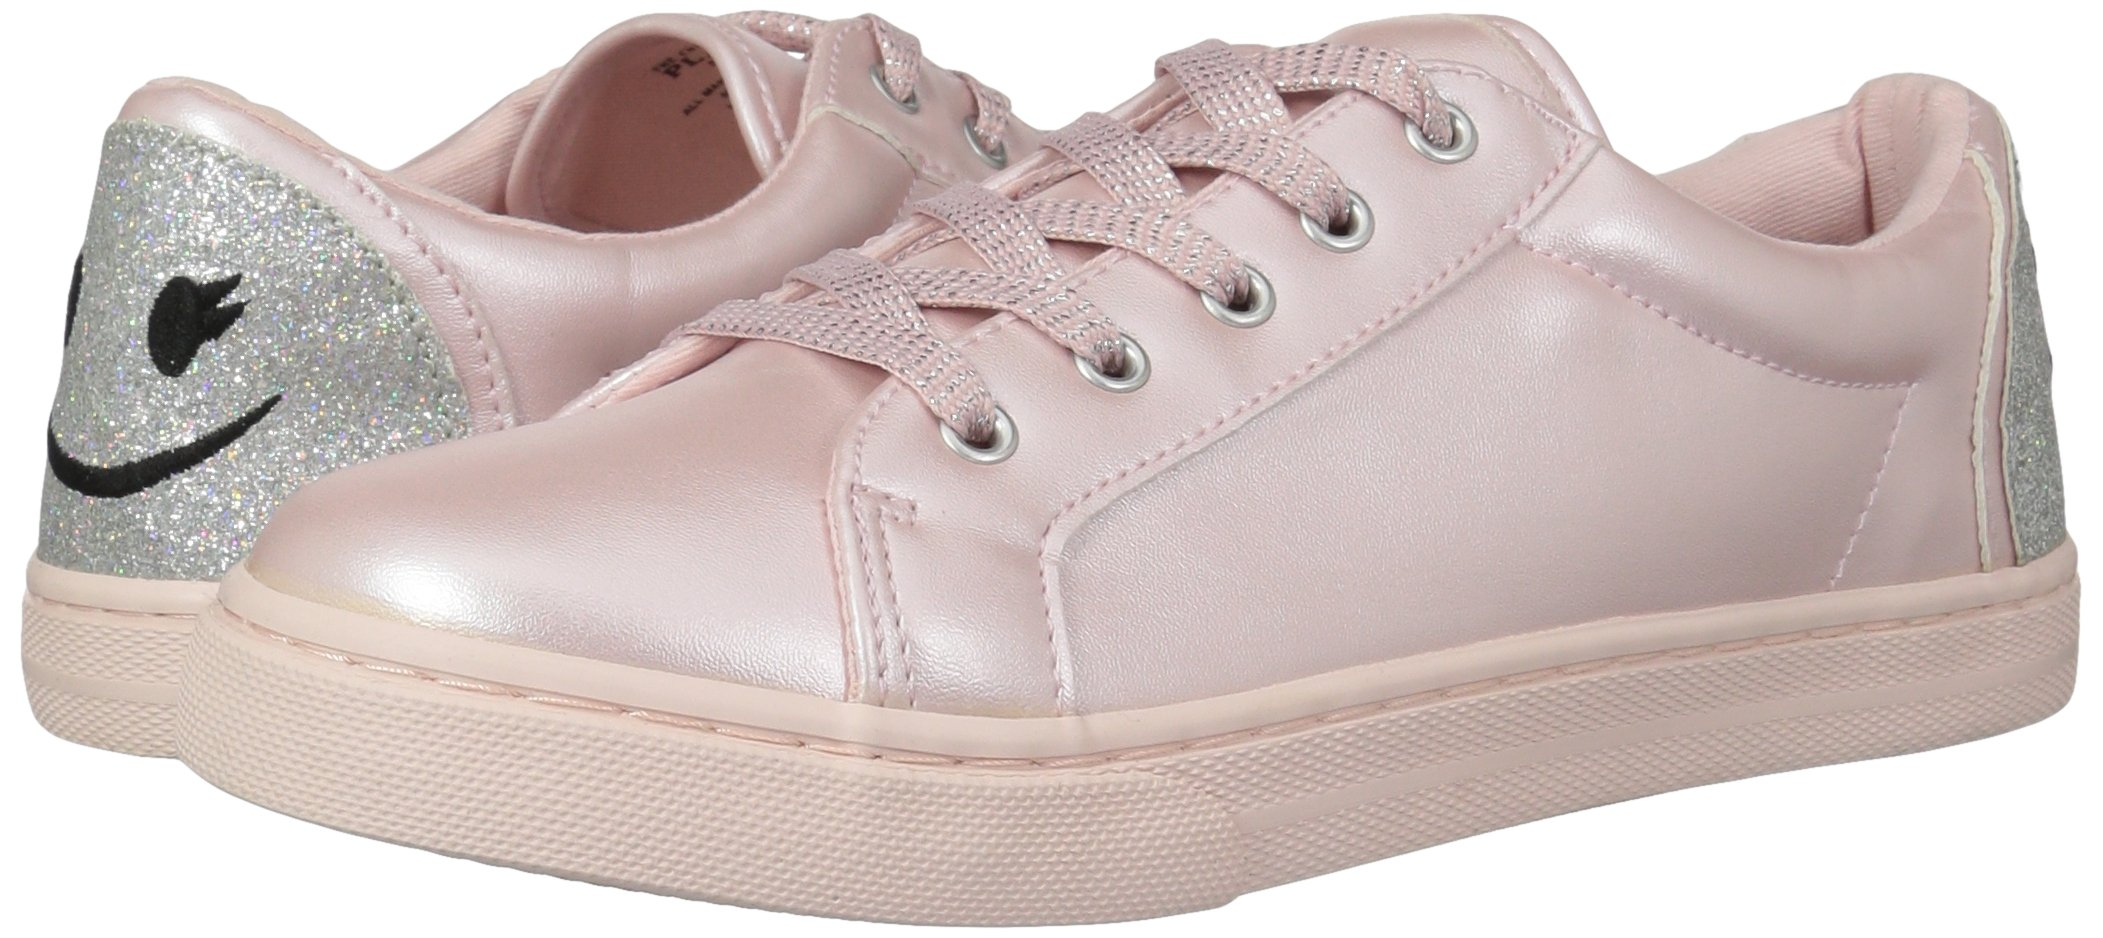 The Children's Place Girls' BG Emoji Sneaker, Pink, Youth 4 Medium US Big Kid by The Children's Place (Image #6)